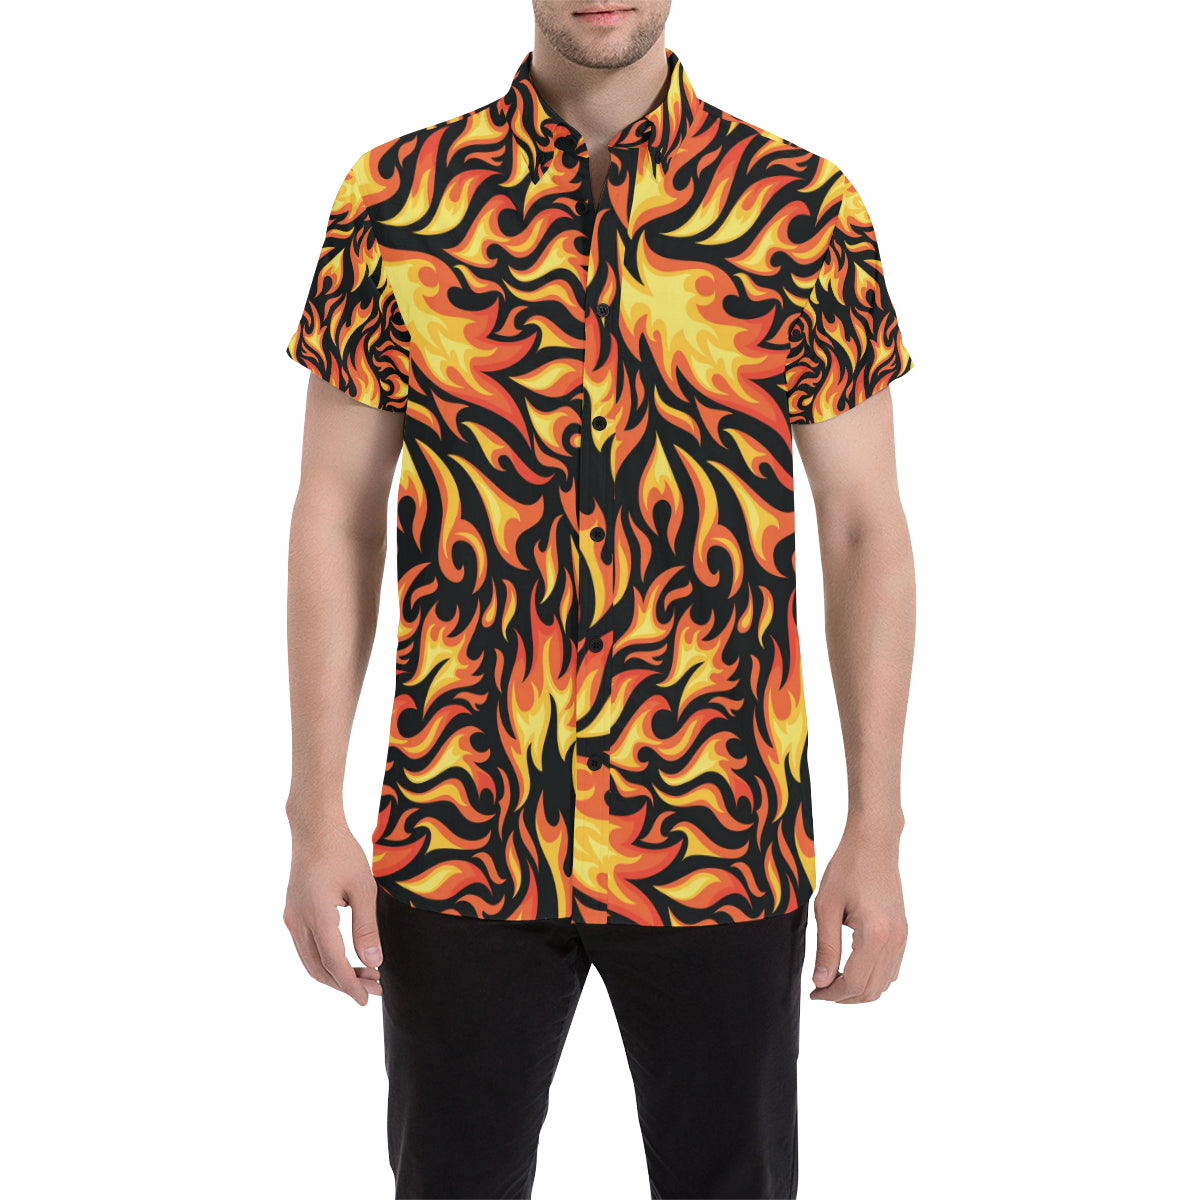 Flame Fire Design Pattern Men Button Up Shirt